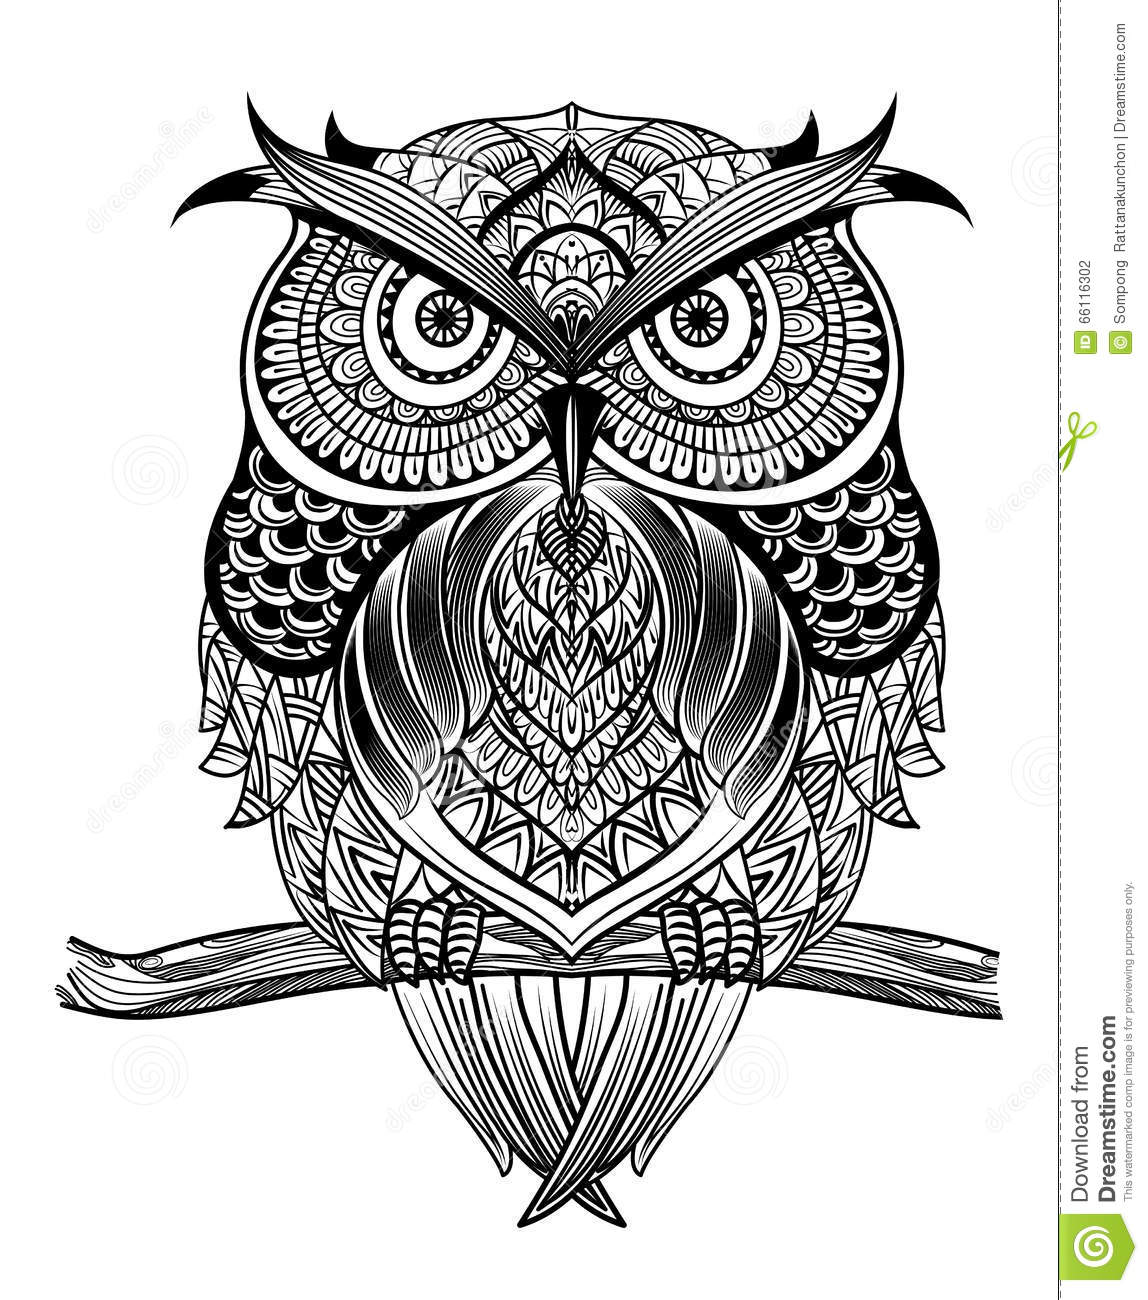 Line Art Prints : Line art owl stock vector illustration of page